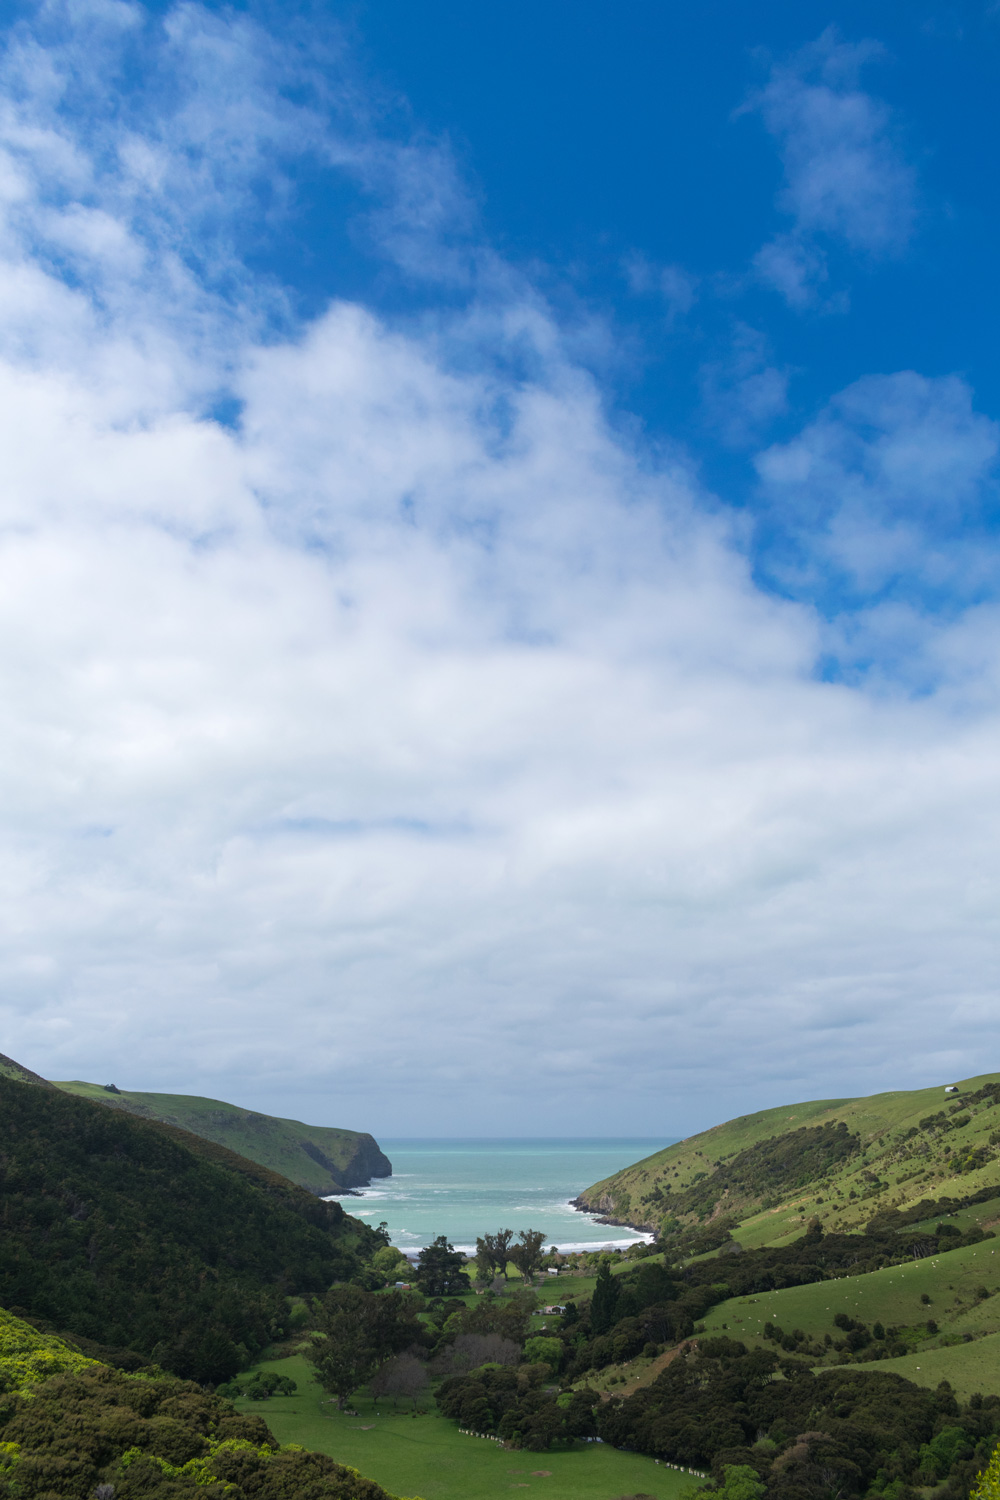 blog-hinewai-artist-retreat-walk-view5.jpg